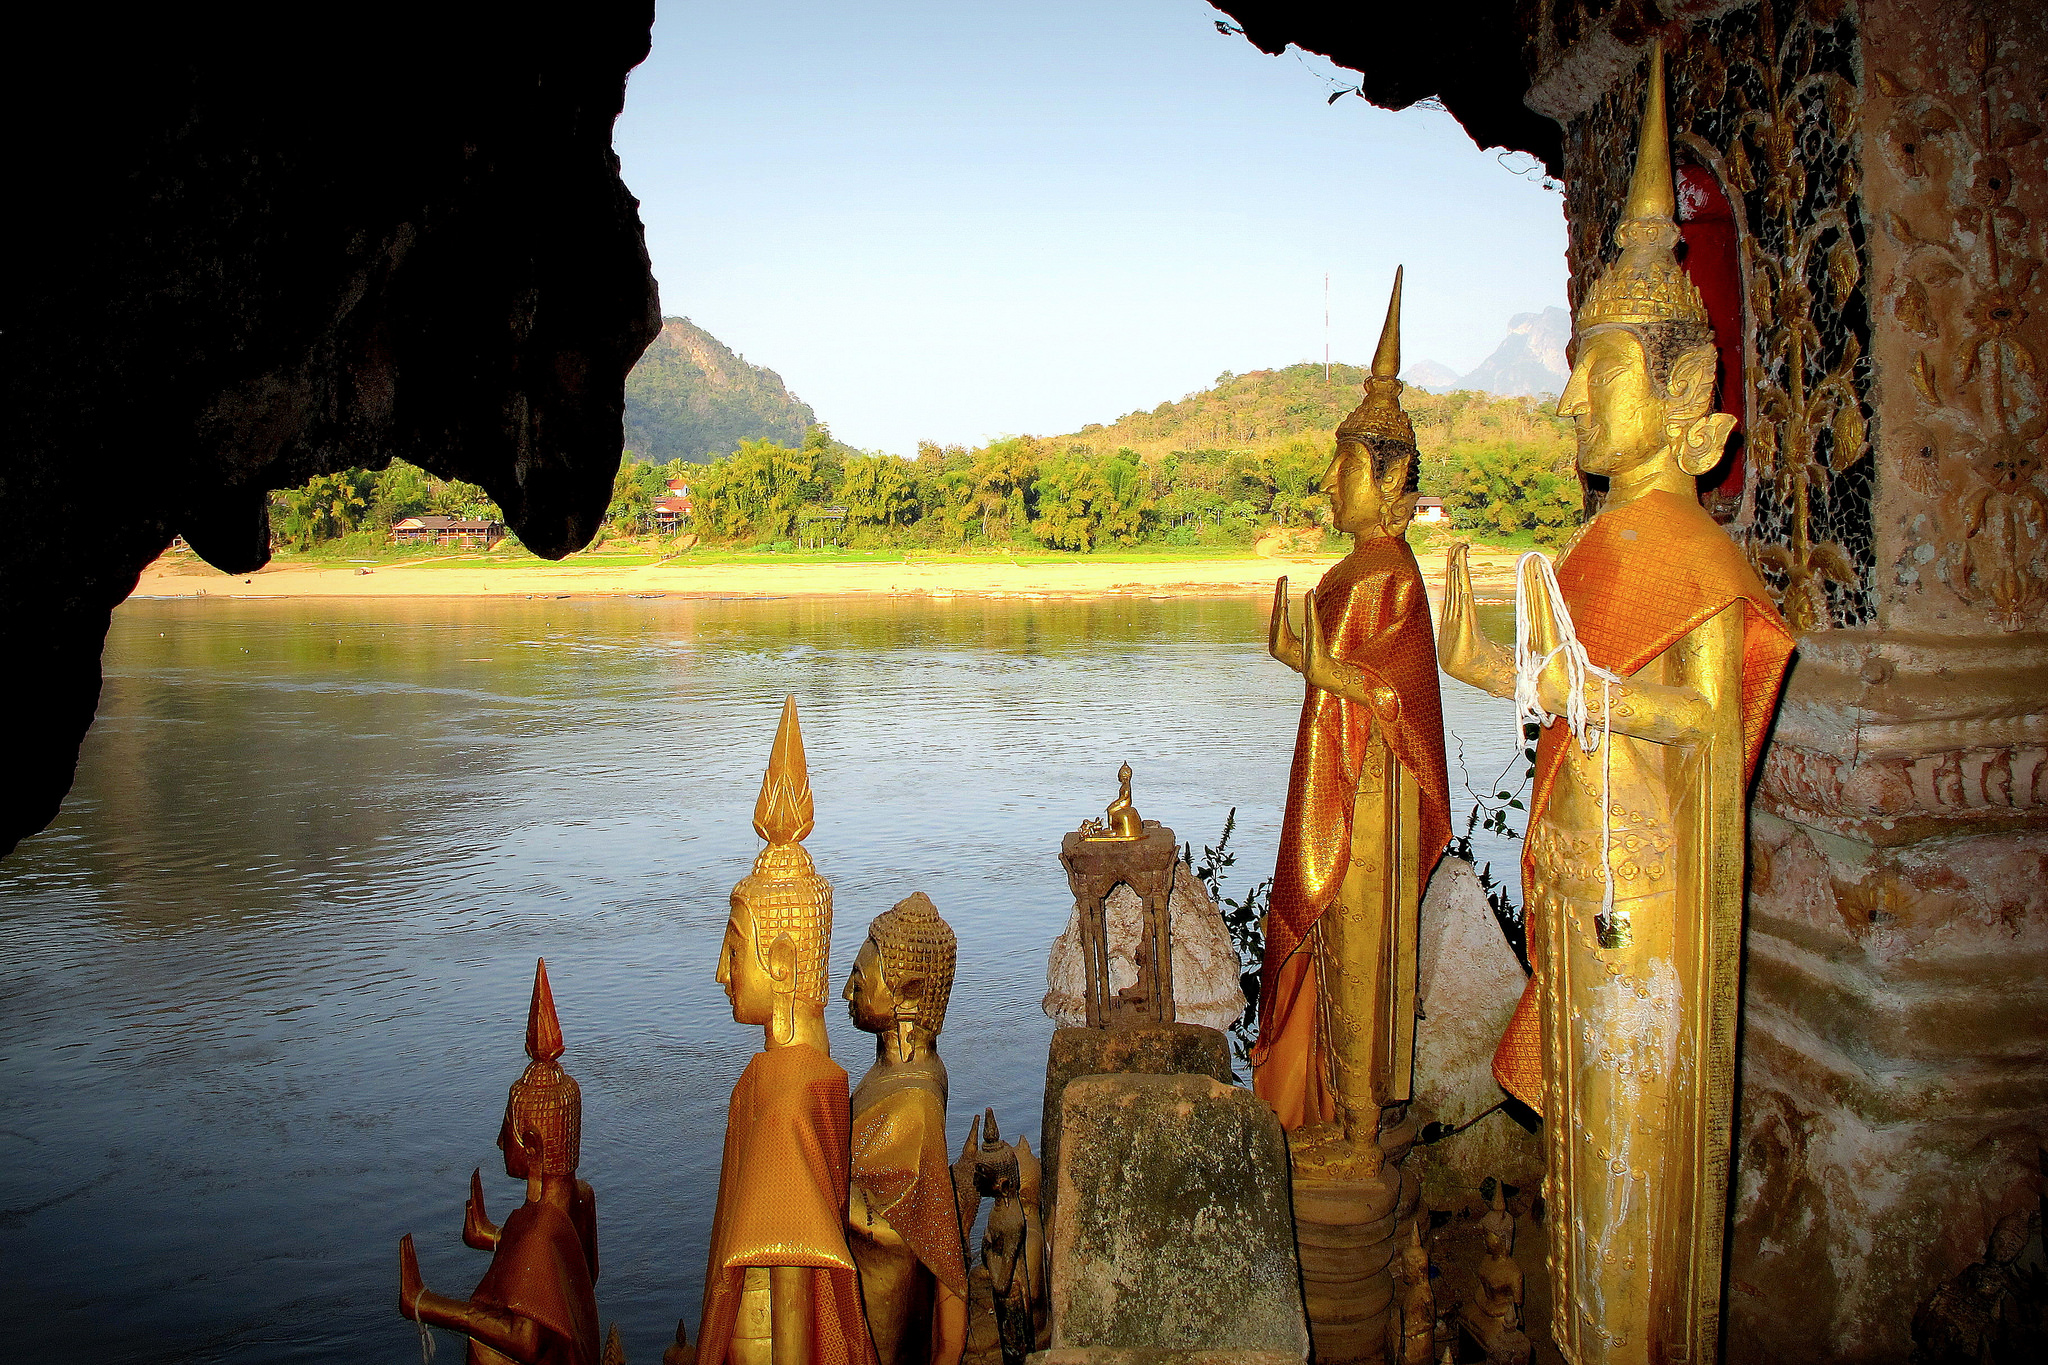 Pak Ou Caves - Cave in Laos - Thousand Wonders